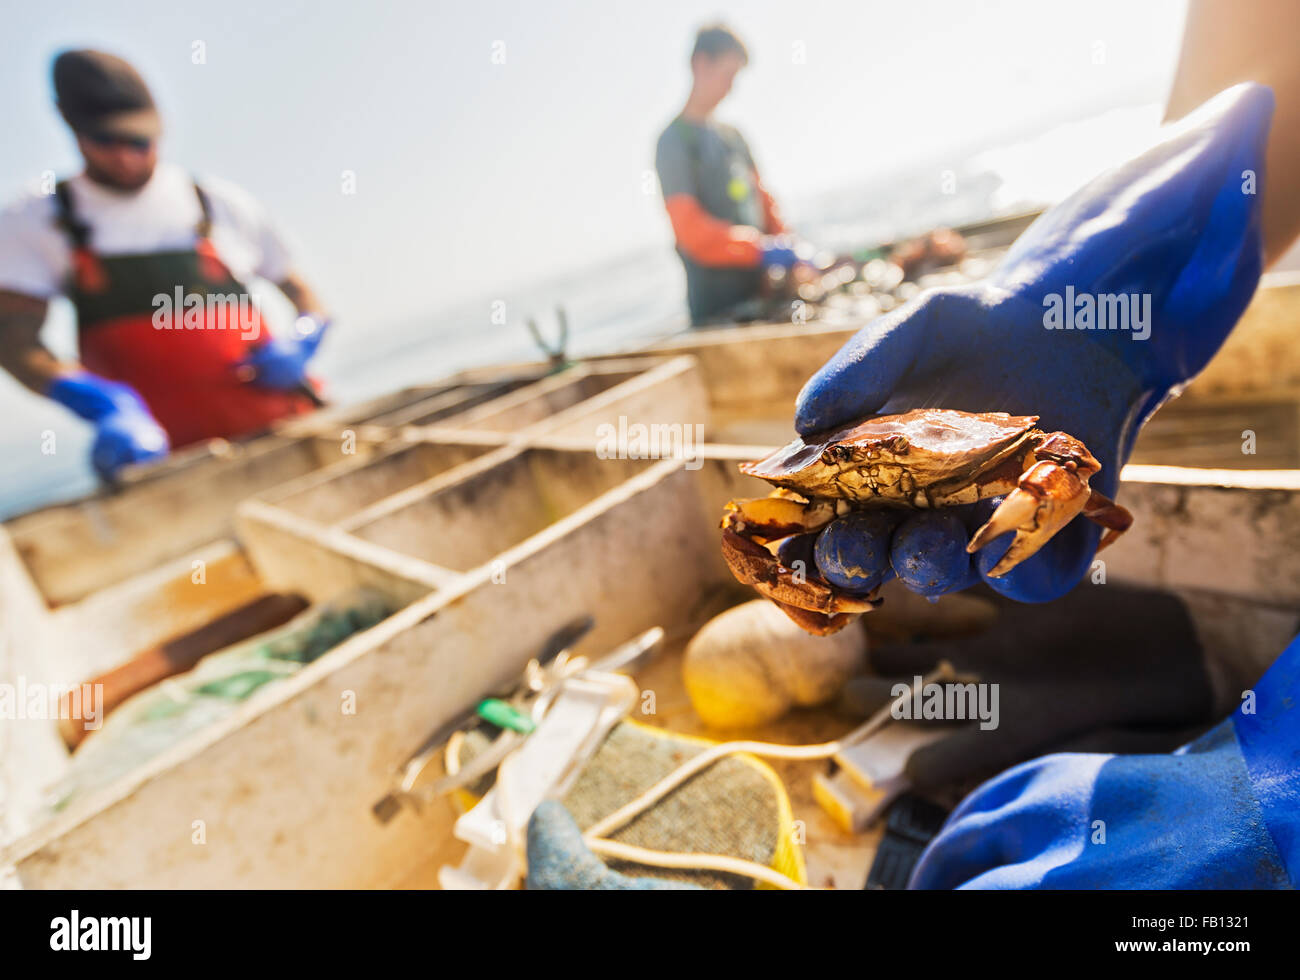 Man's hand holding crab with two fisherman working in background - Stock Image